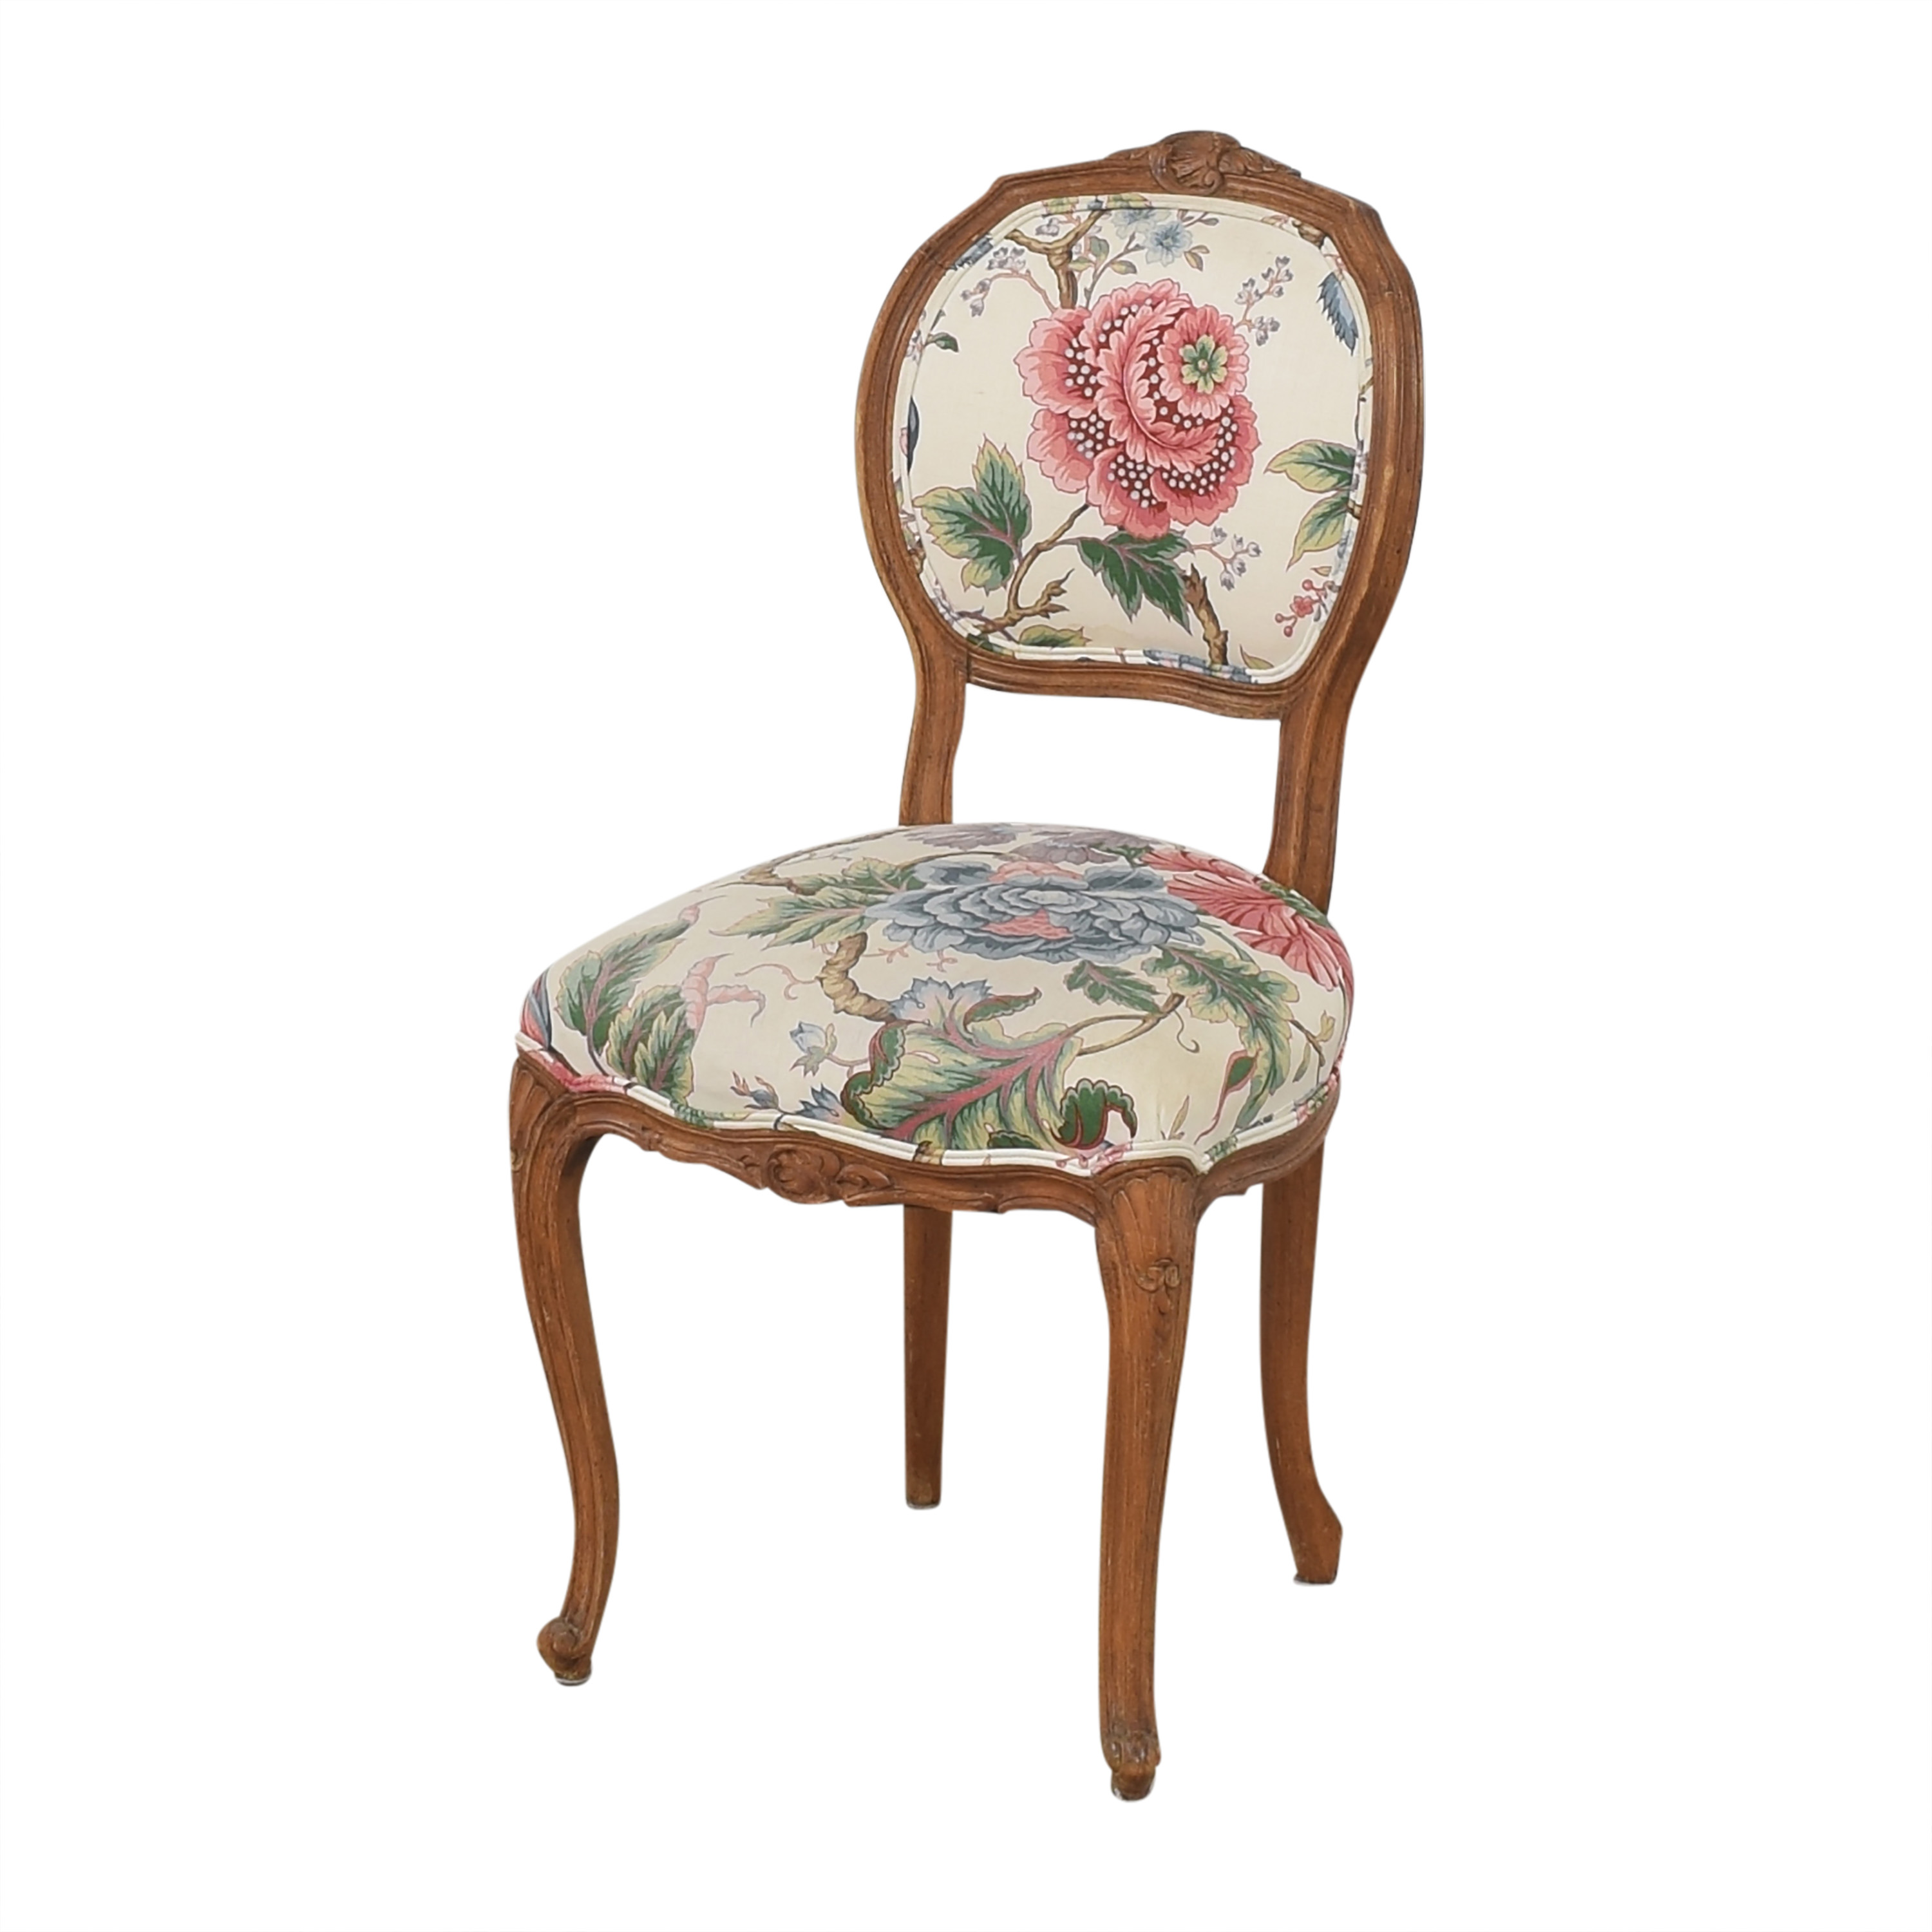 Floral Vintage-Style Upholstered Chair / Chairs